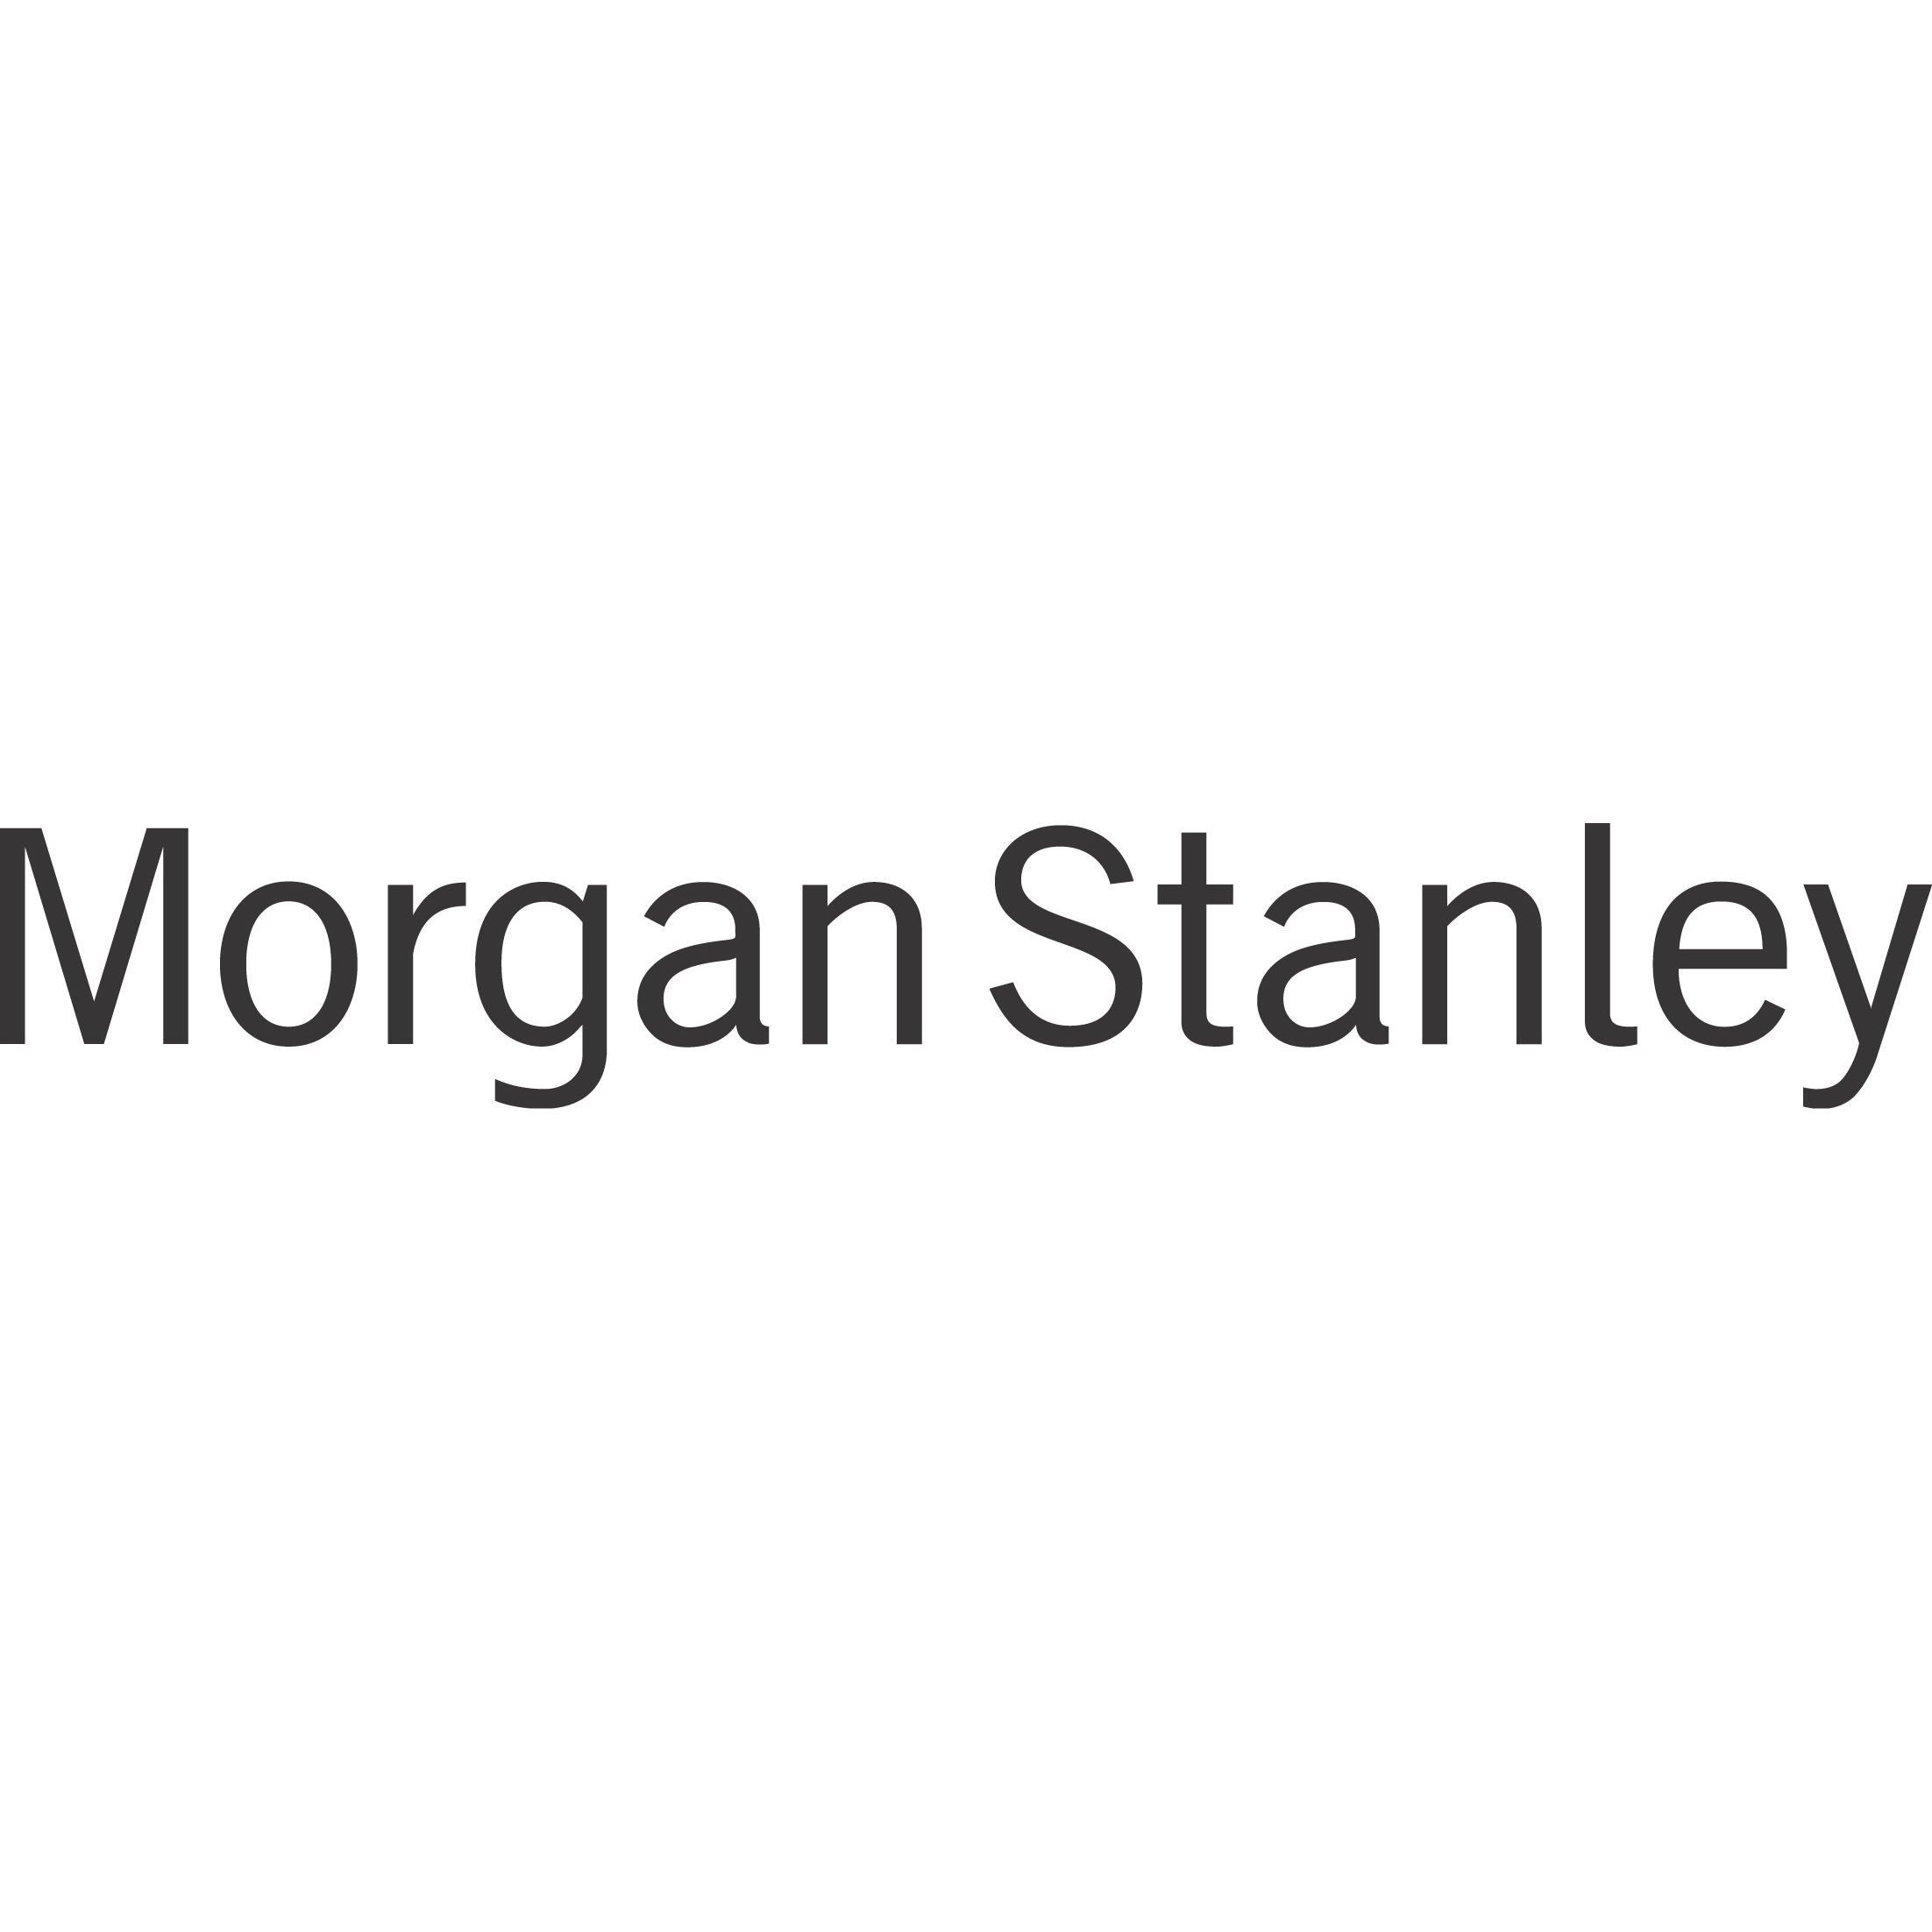 Richard Garber - Morgan Stanley | Financial Advisor in Atlanta,Georgia